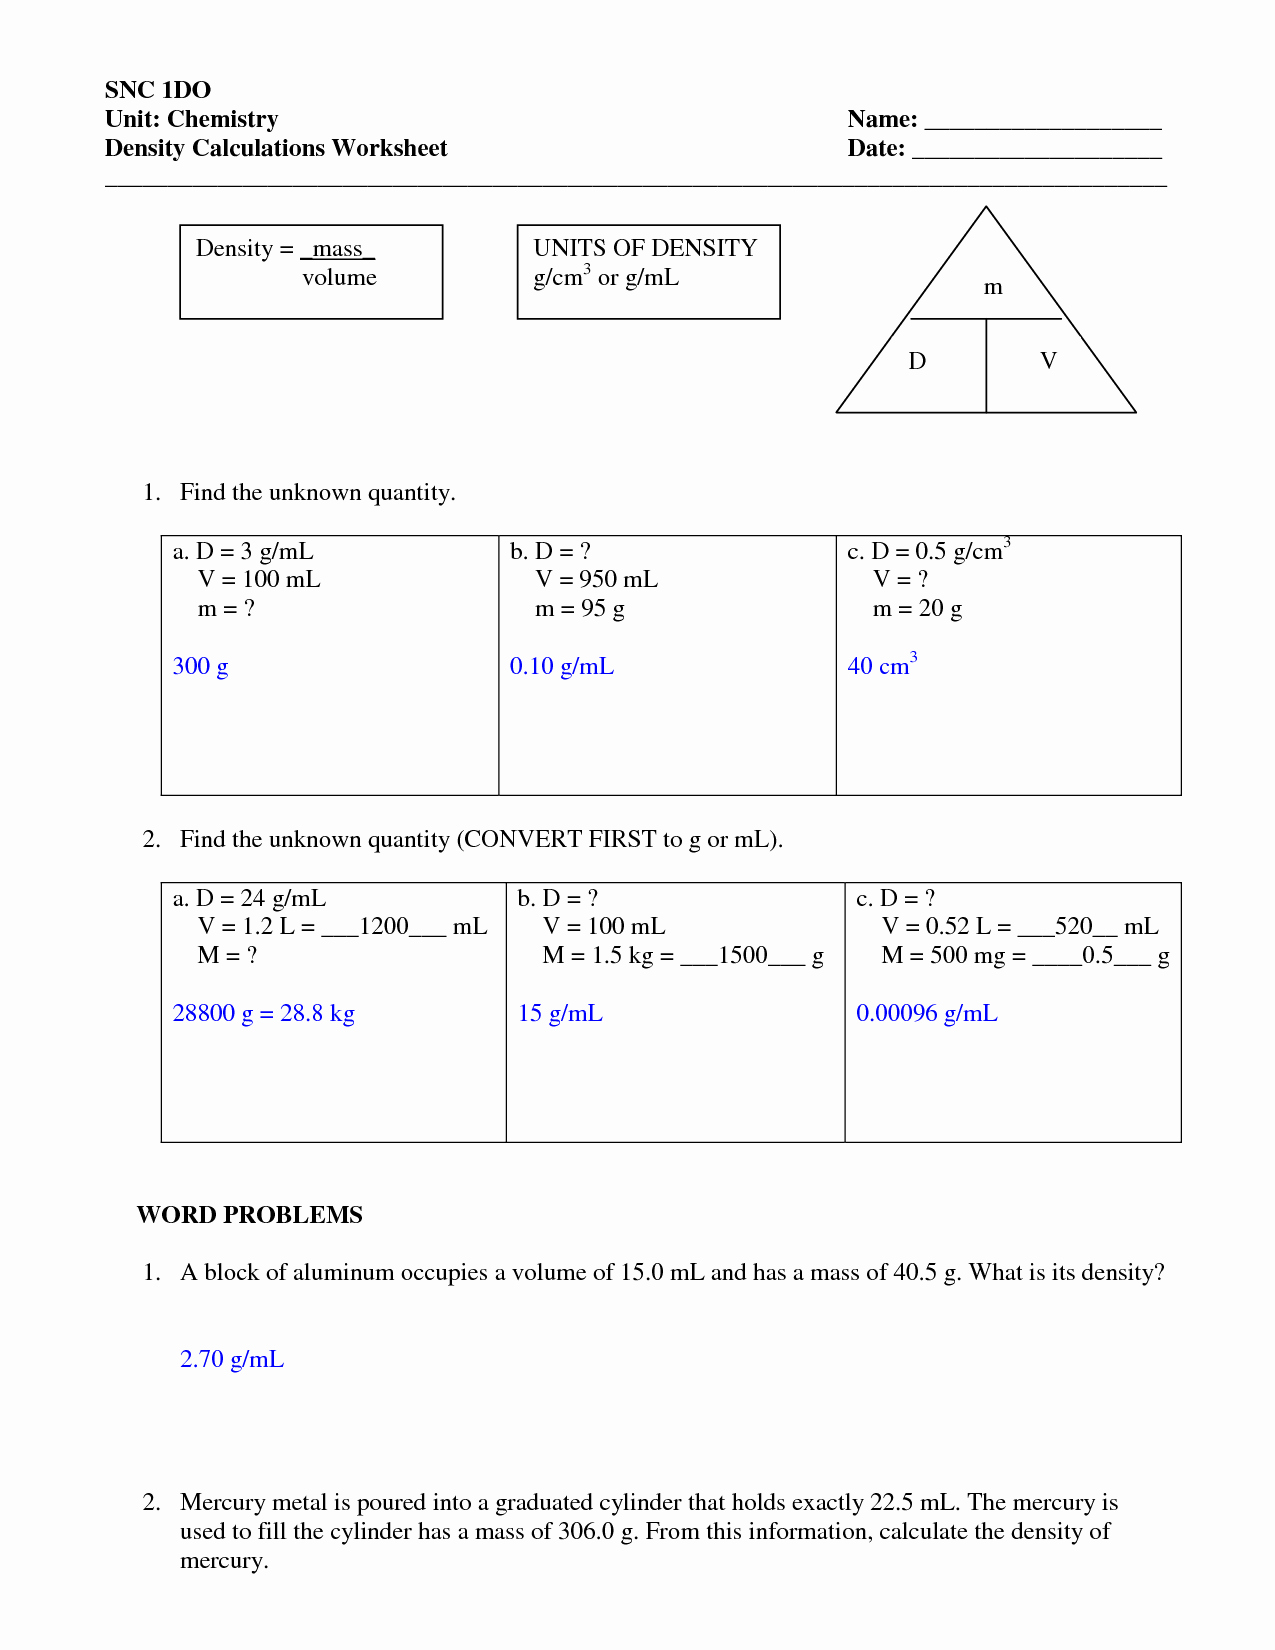 Science 8 Density Calculations Worksheet Elegant Science 8 Density Calculations Worksheet Answers